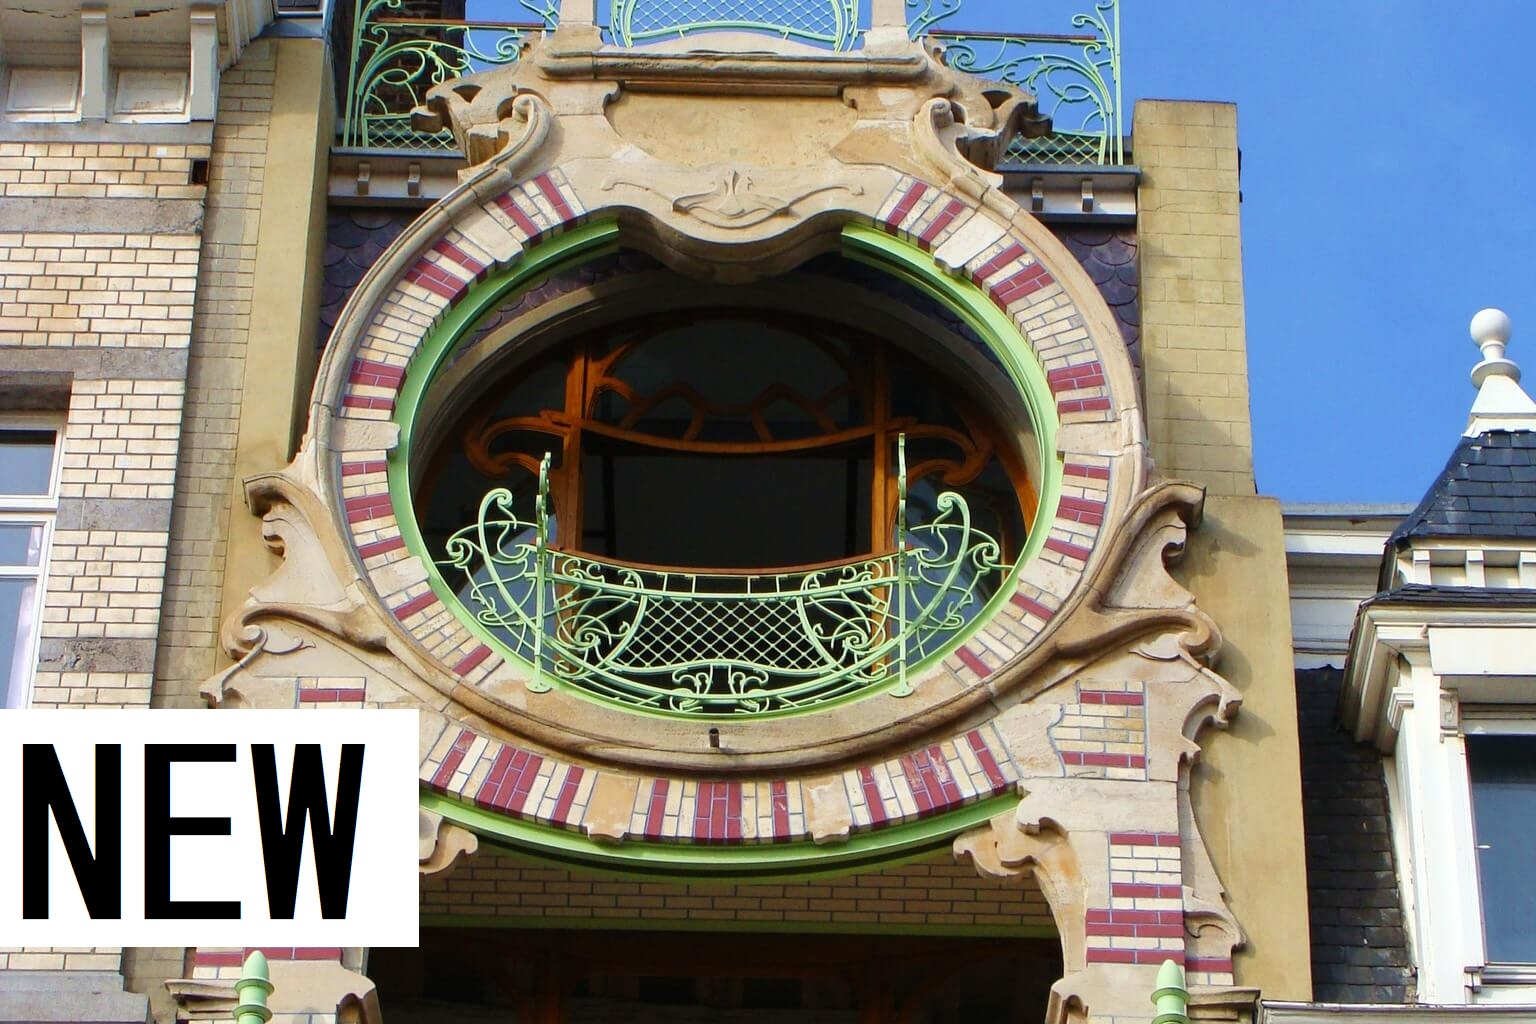 Visite Art Nouveau Rondleiding - Brussels By Foot